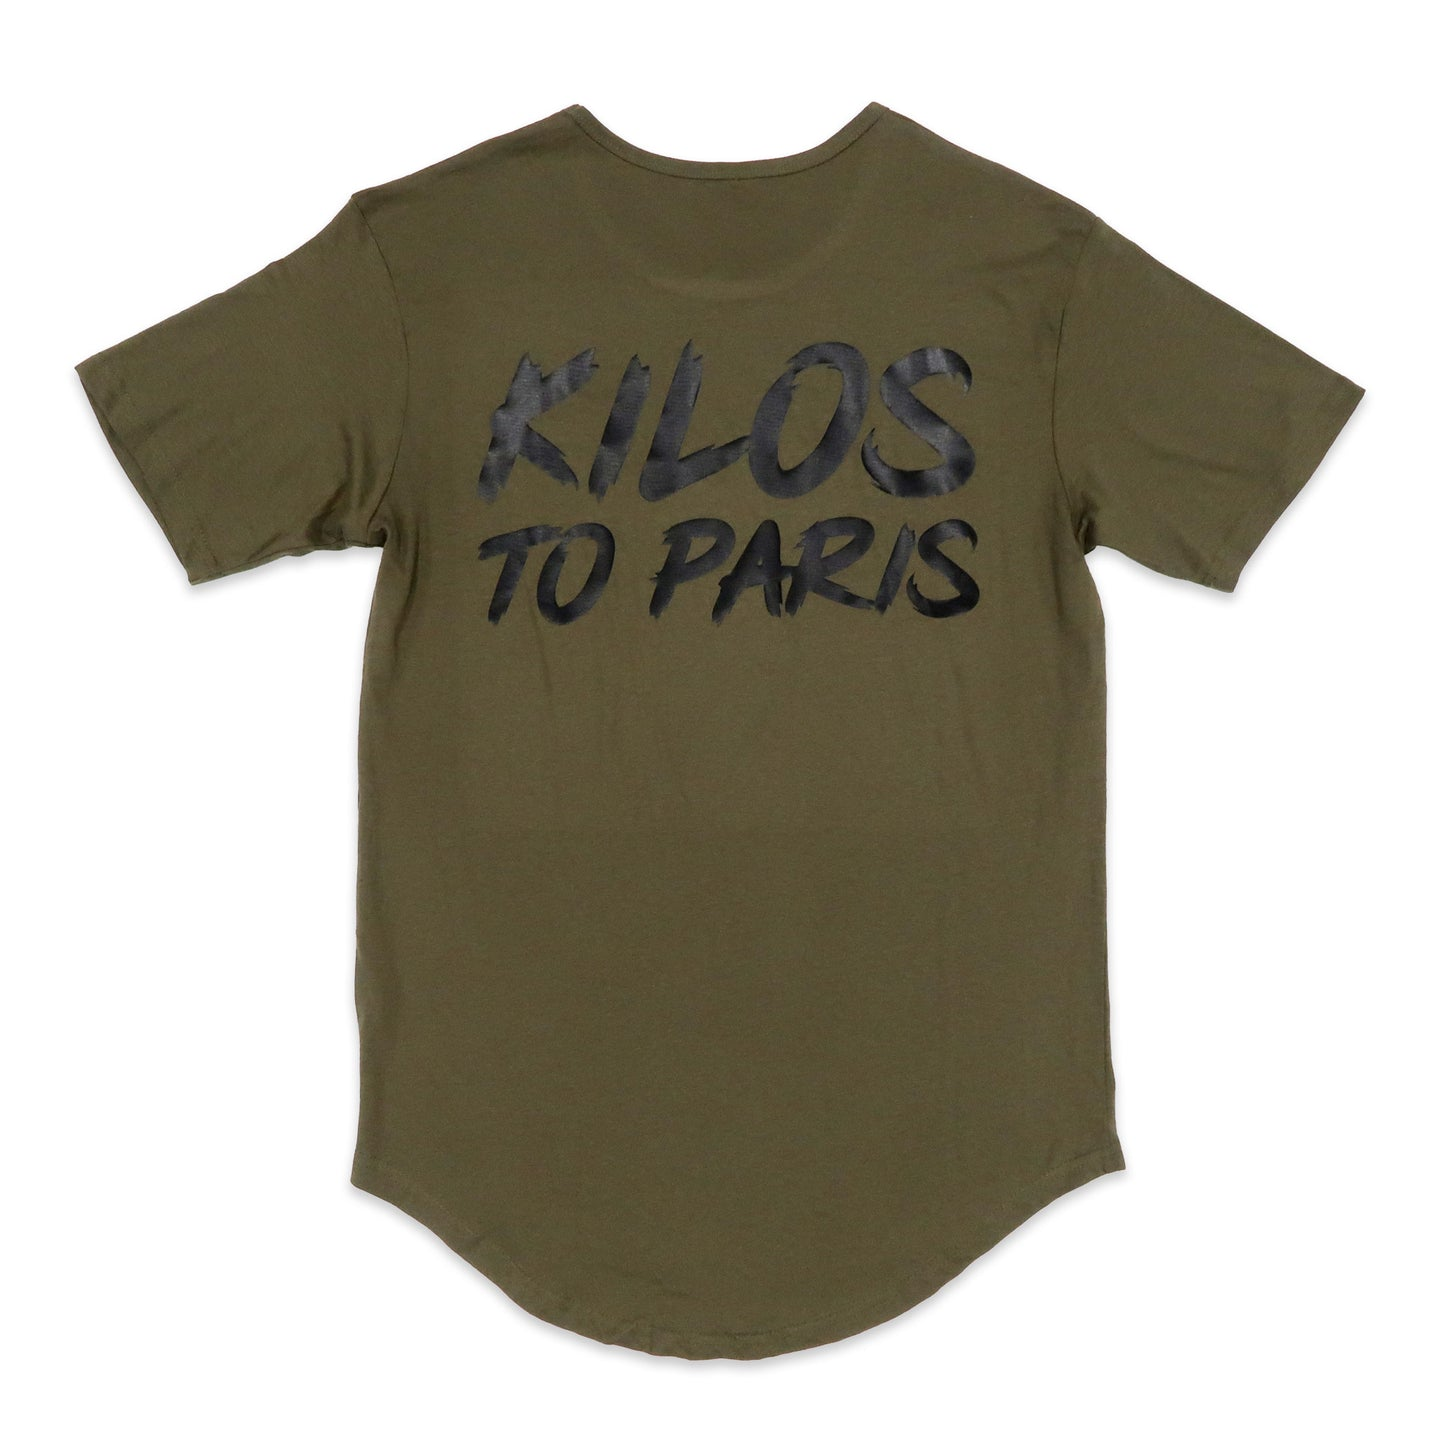 Kilos To Paris Scoop Tee in Olive